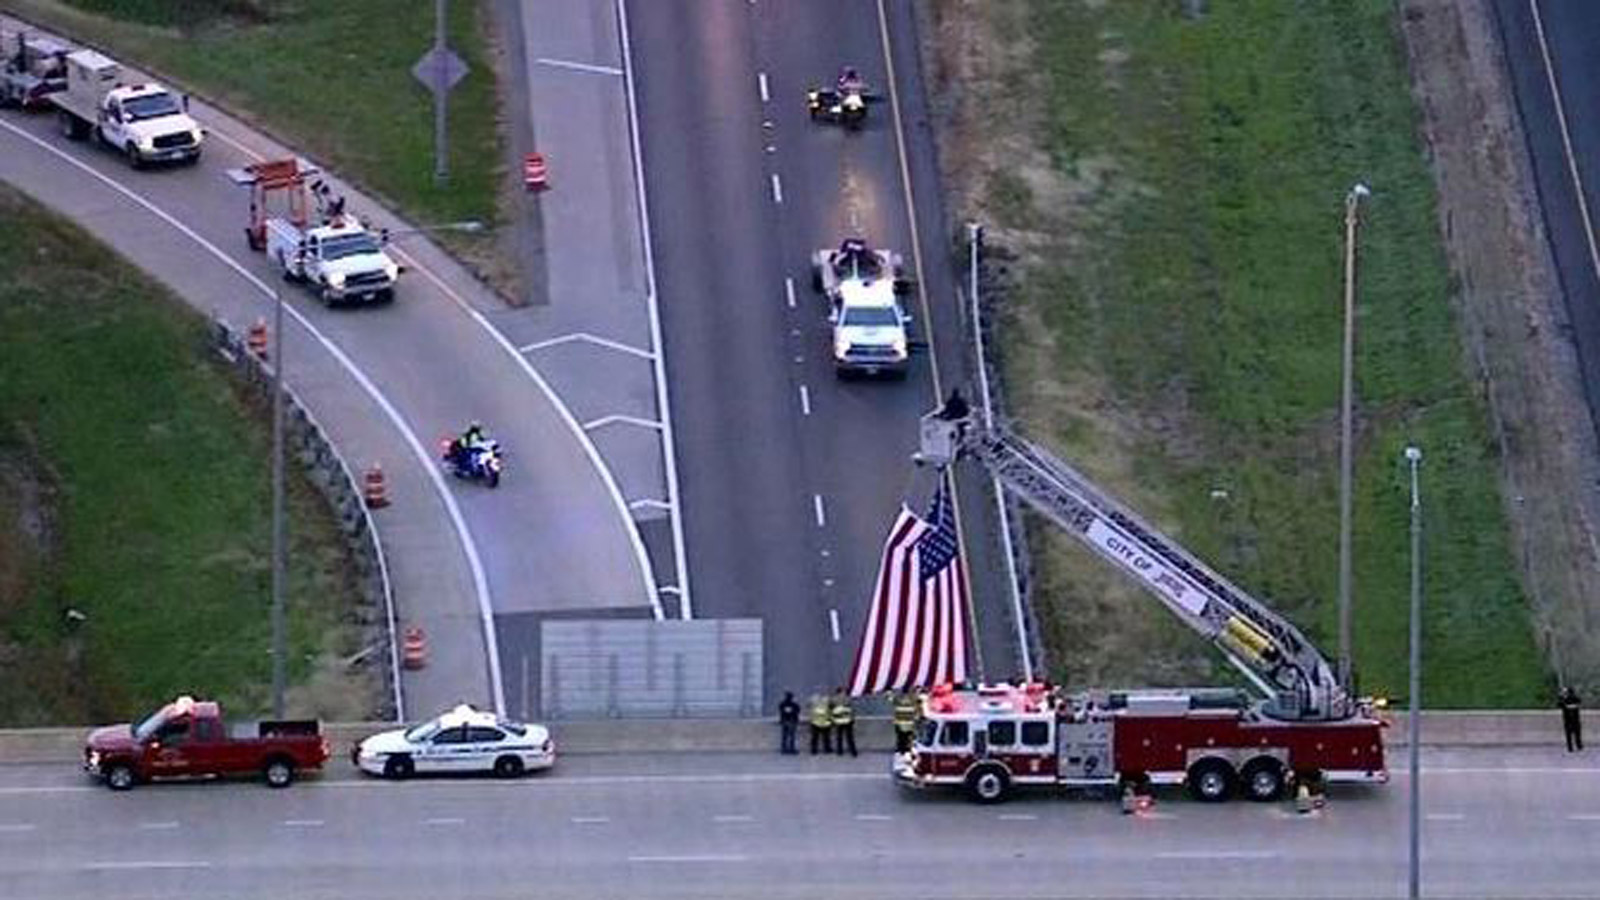 The WTC beam was honored during its journey (credit: Poudre Fire Authority)